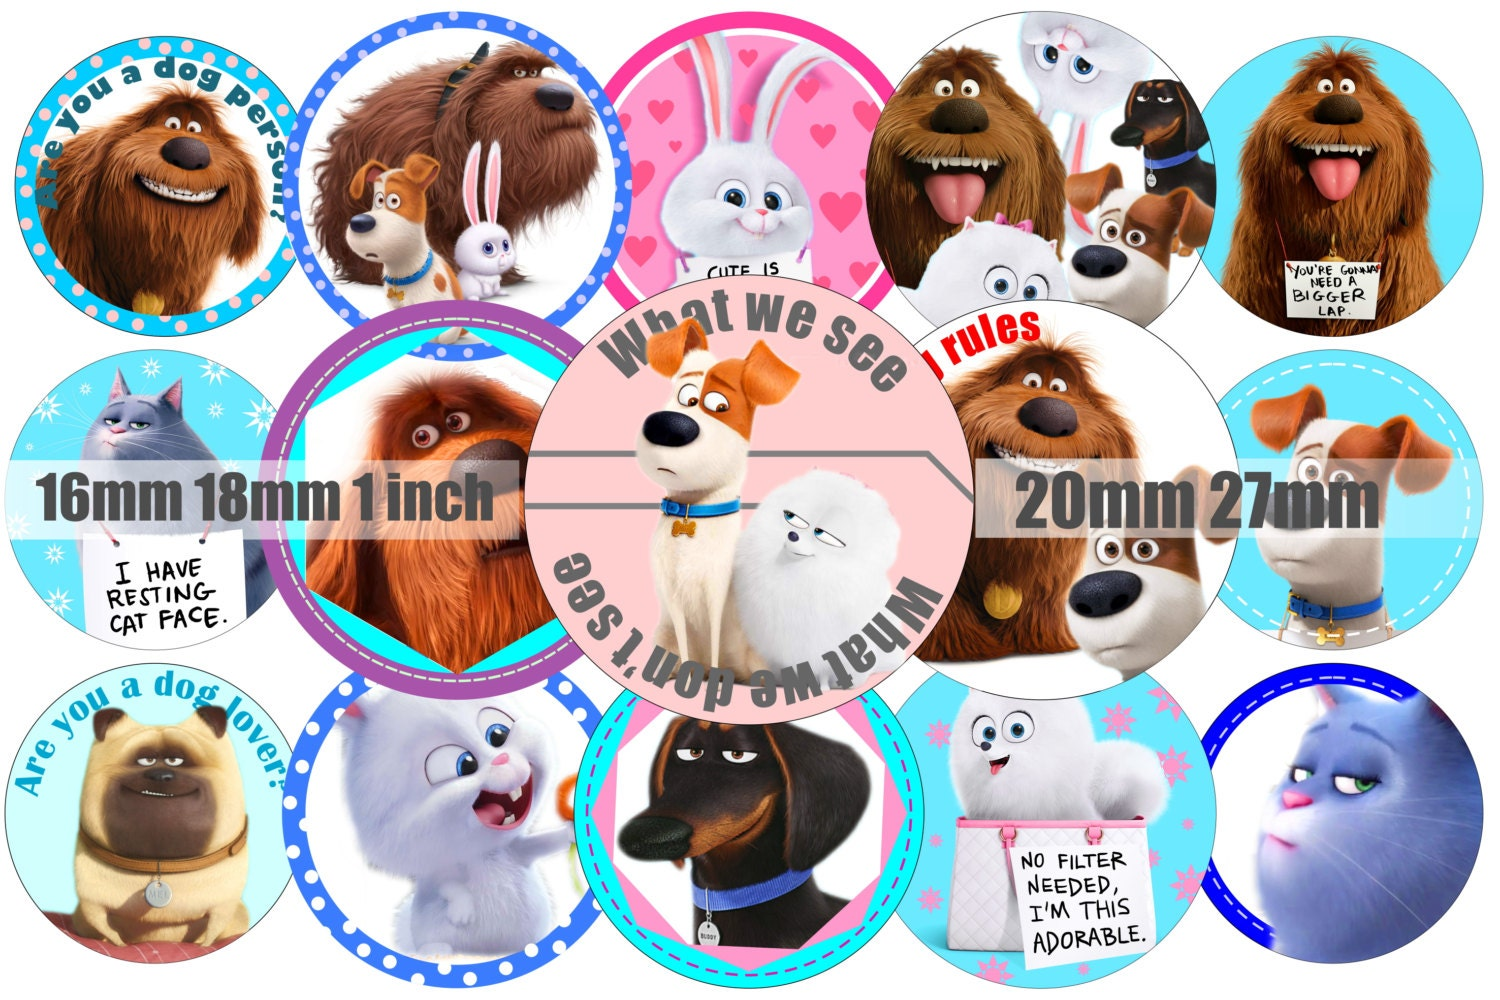 The Secret Life Of Pets Inspired Bottle Cap Image 1 Inch Round